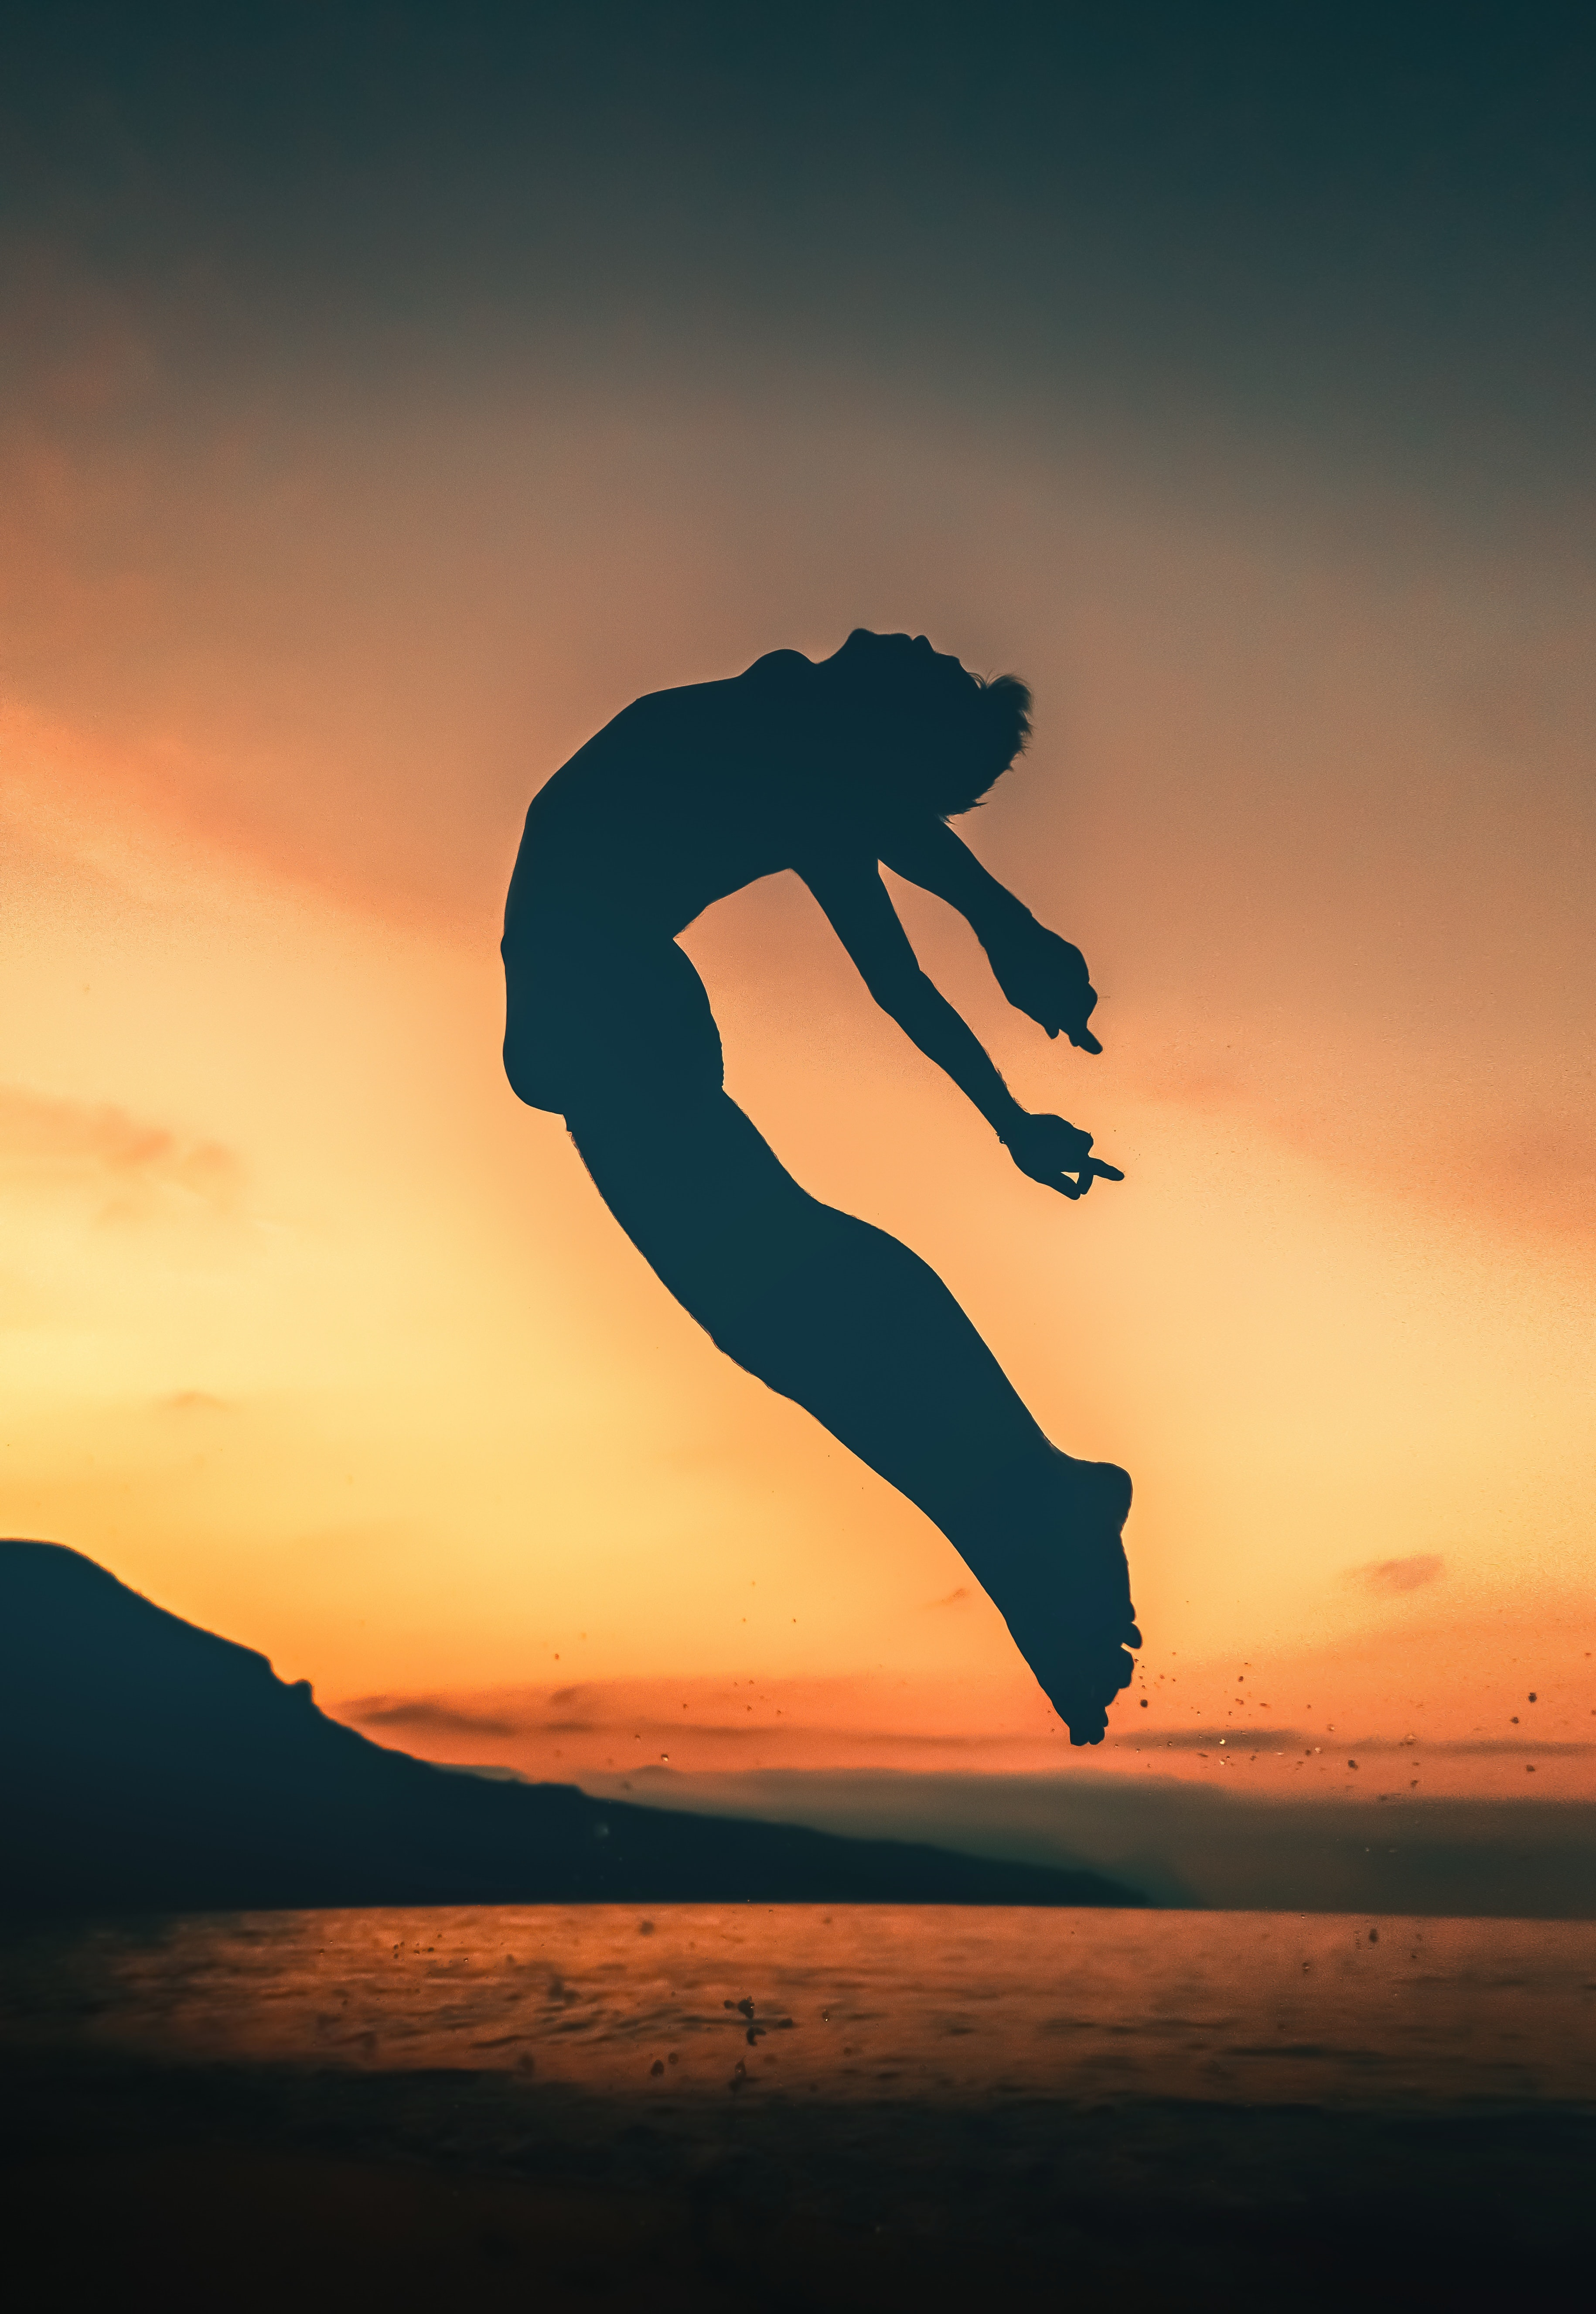 silhouette of person jumping on seashore